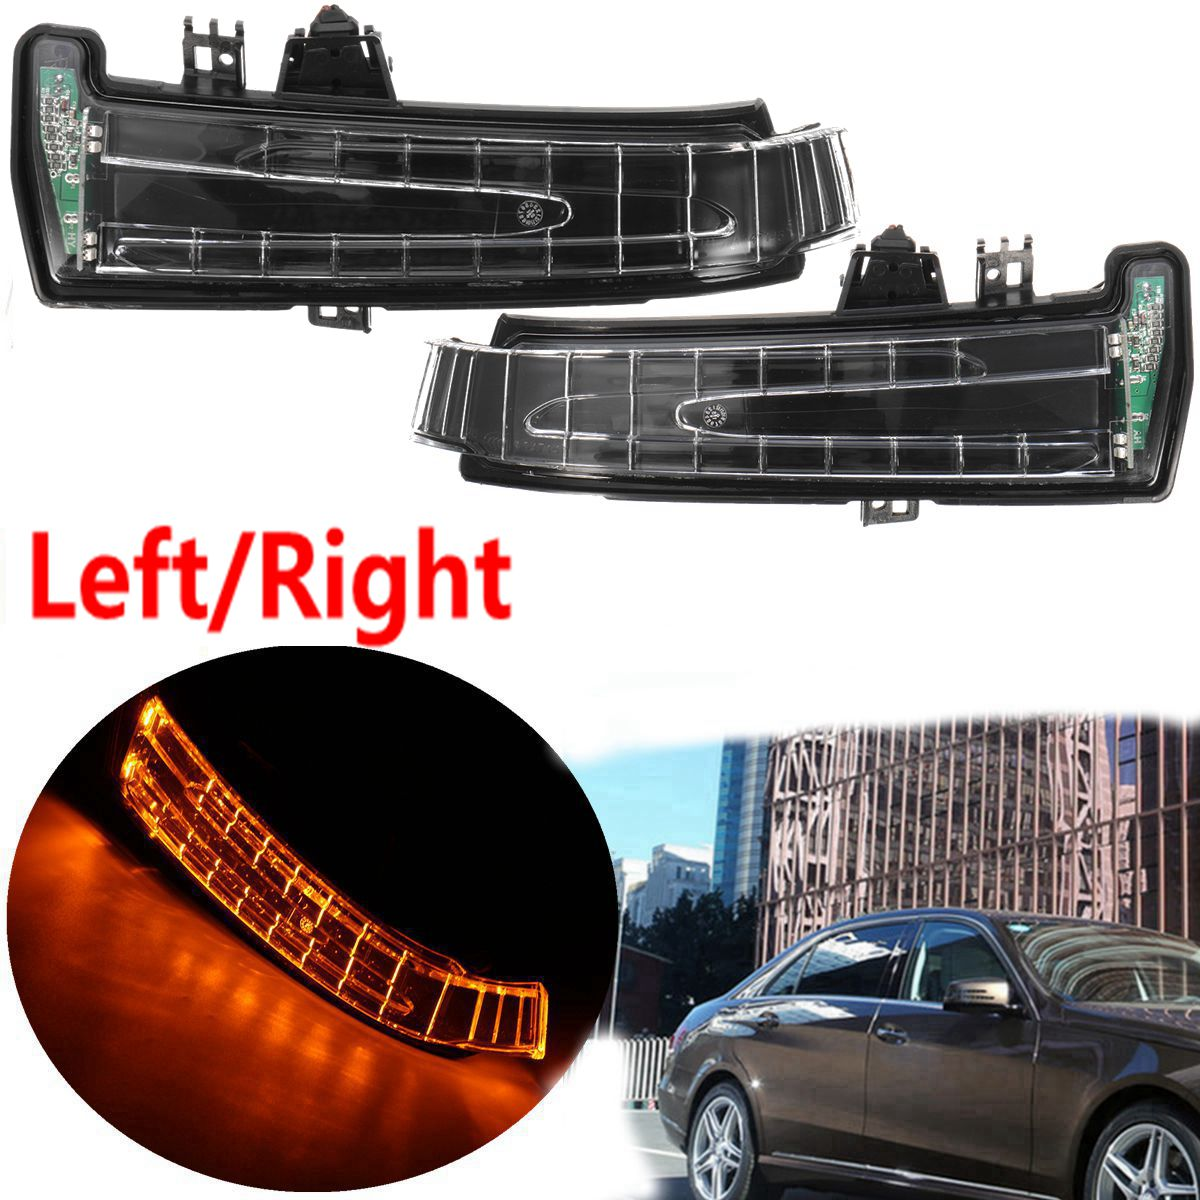 Pair Car Rear View Mirror Indicator Lamp Turn Signal Light Lens For Mercedes W204 W212 W221 2010-2013 1pcs yellow side mirror turn signal light lens for mercedes w204 w212 w221 left side